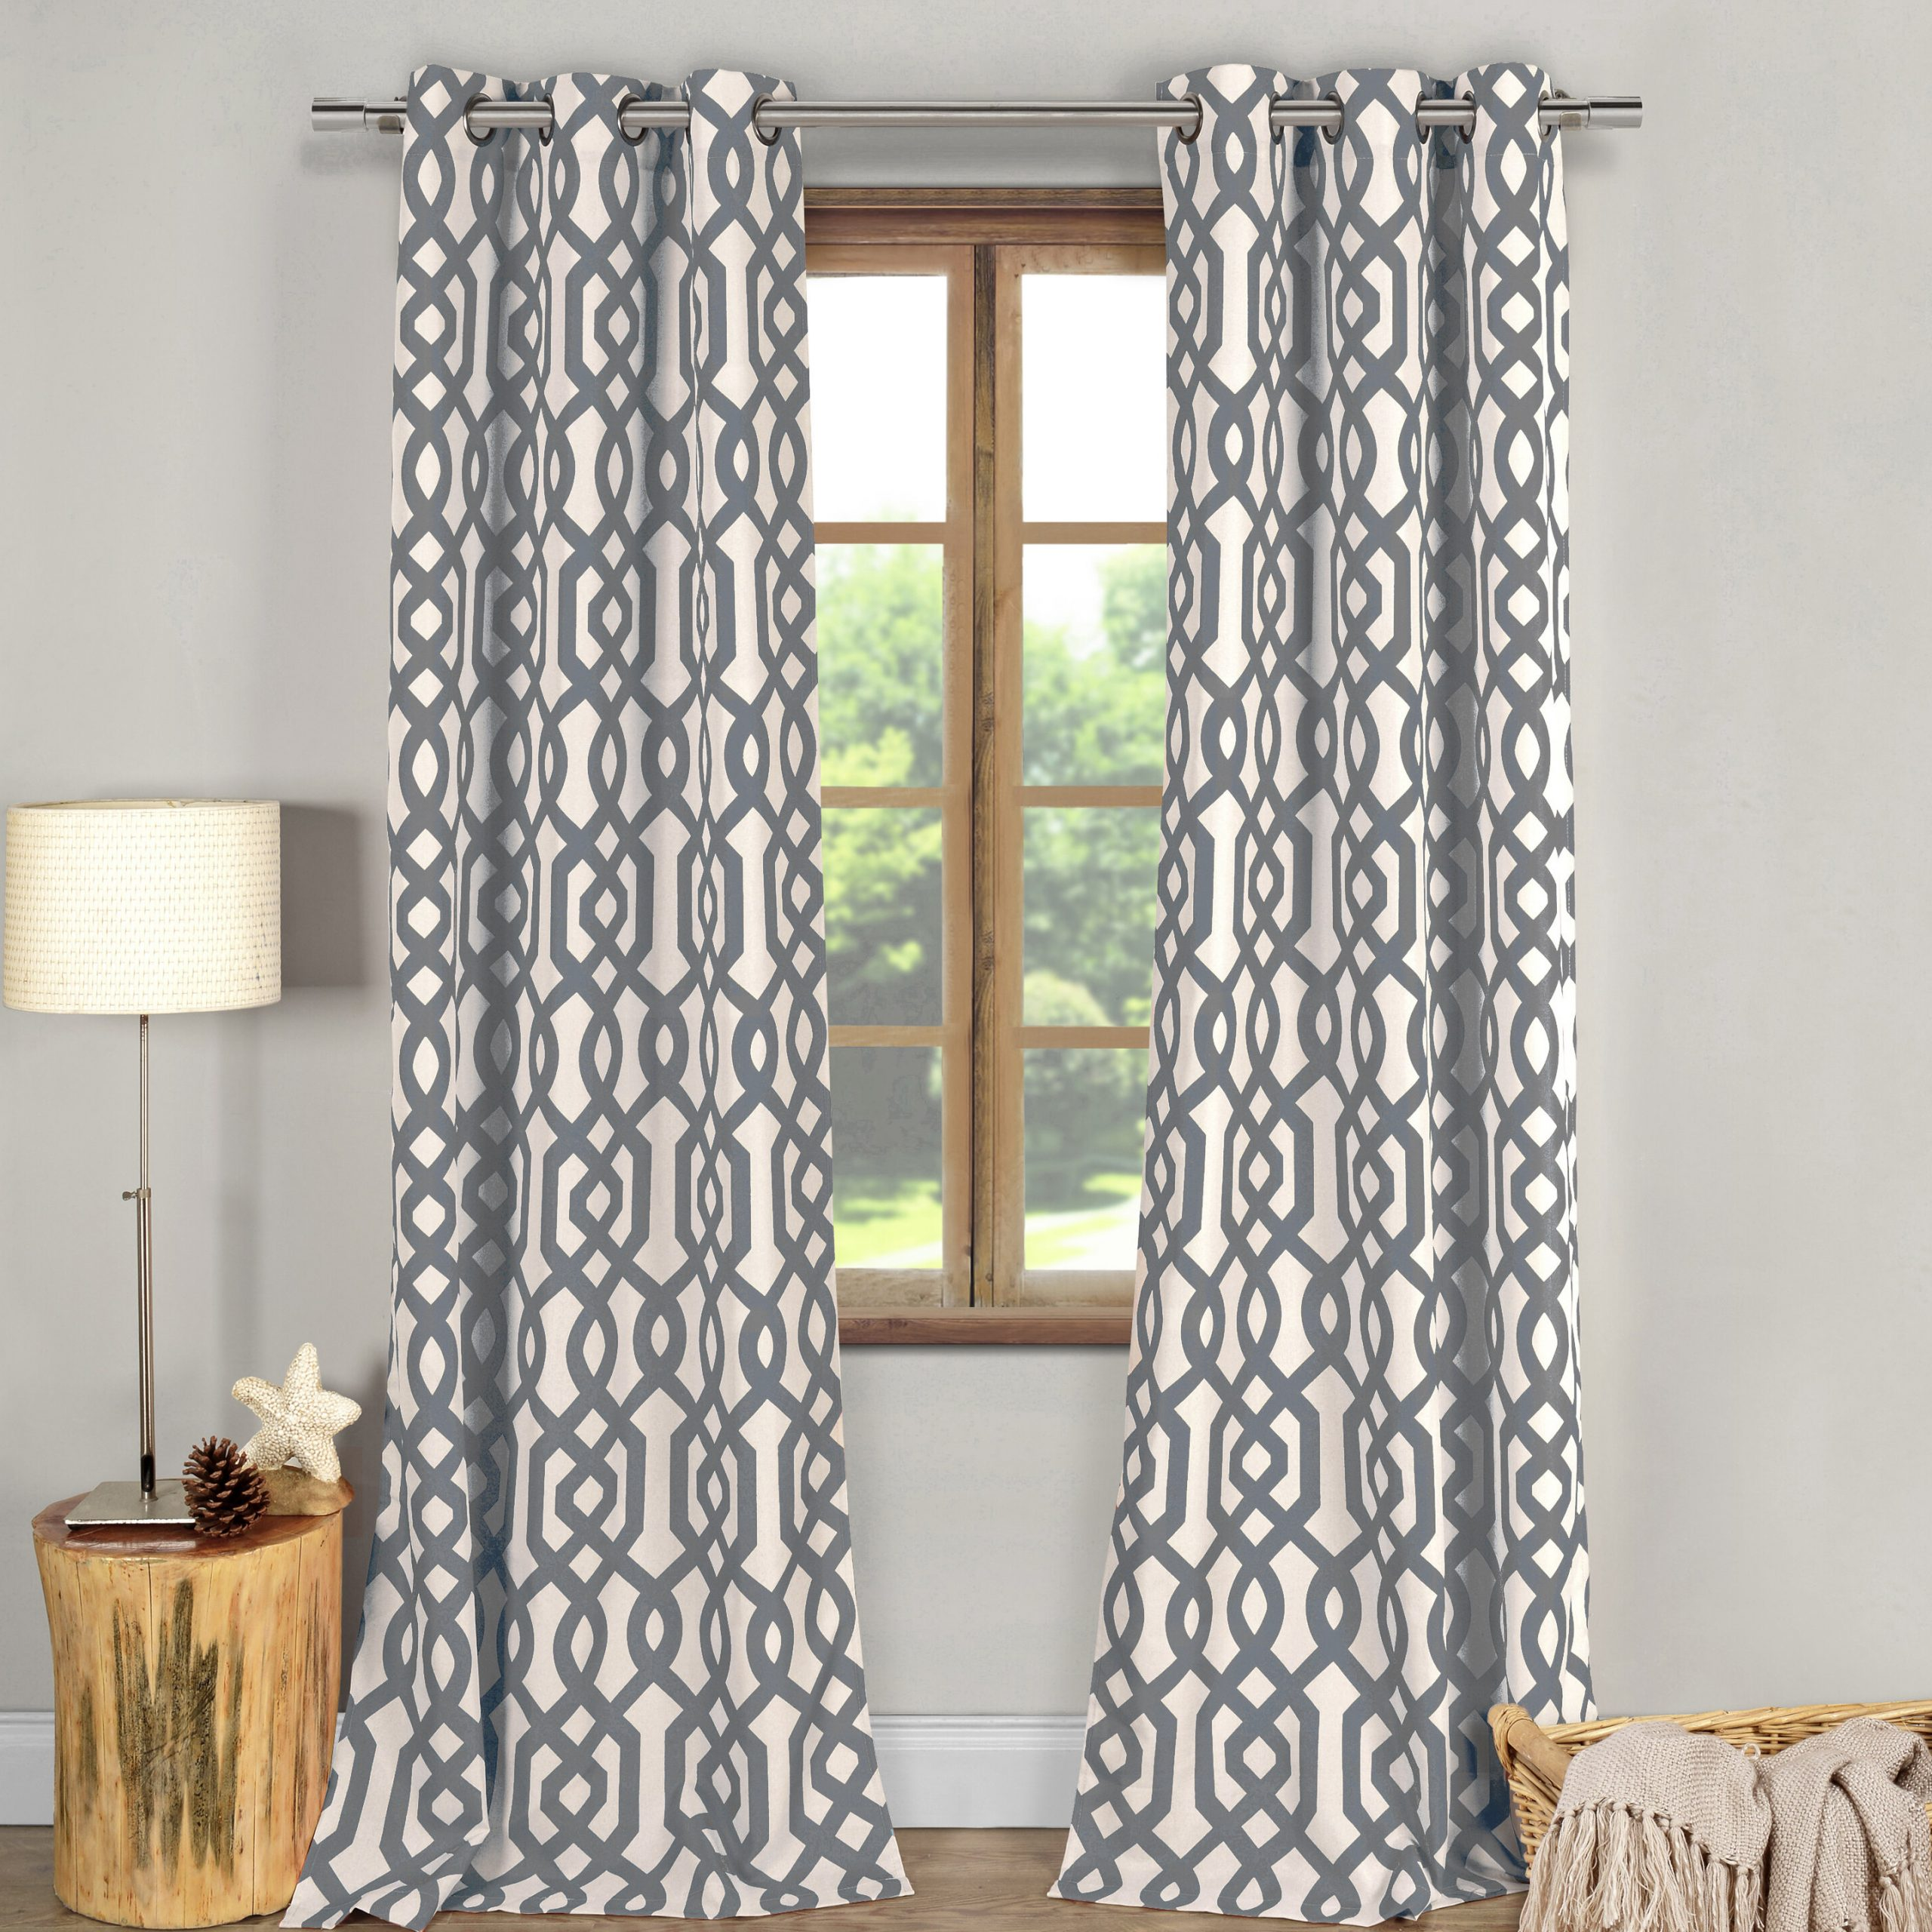 Fretwork Print Pattern Single Curtain Panels With Regard To Well Known Fretwork Geometric Blackout Grommet Curtain Panels (Gallery 8 of 20)